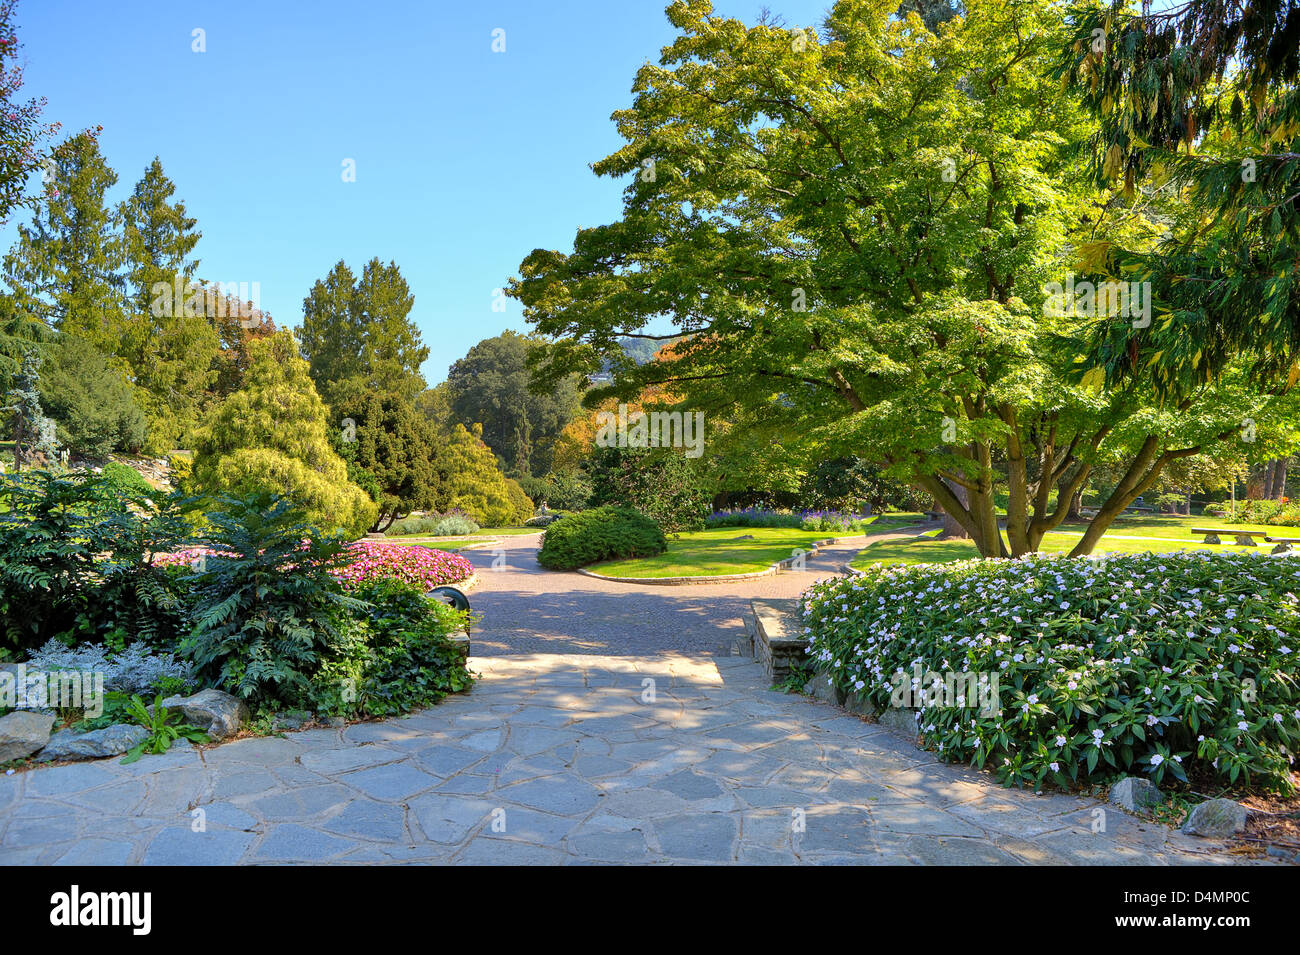 Alleys and walkways among green lawns and colorful trees at botanic ...